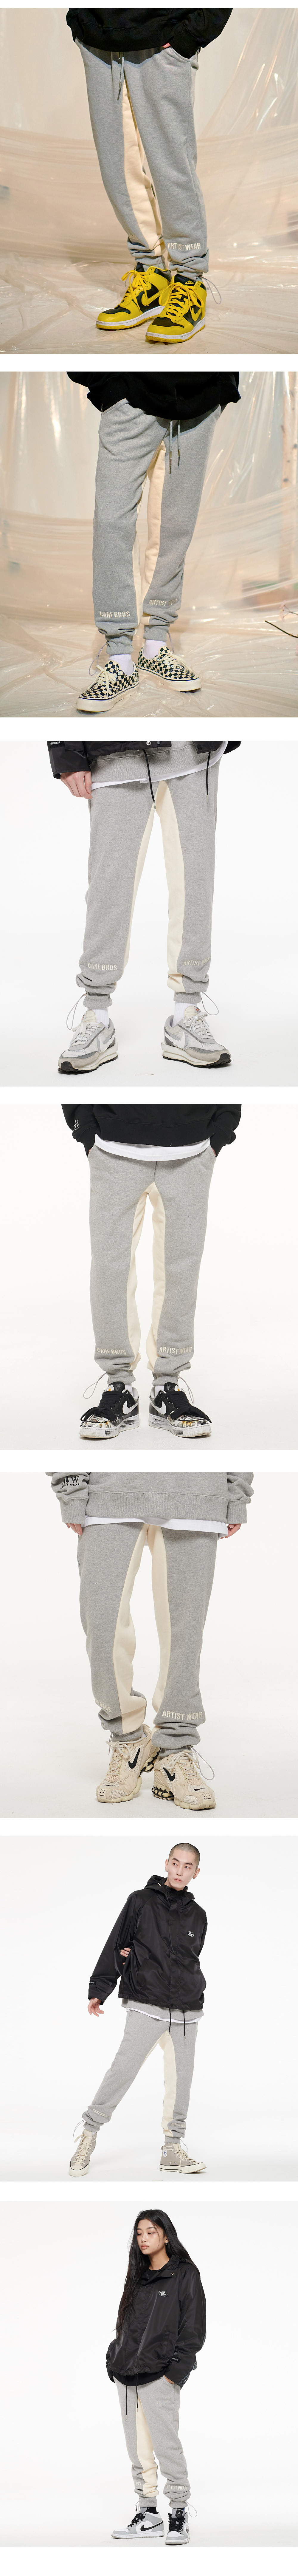 19FW_CXA_TECHNICAL-STRING-TRACK-PANTS_02.jpg